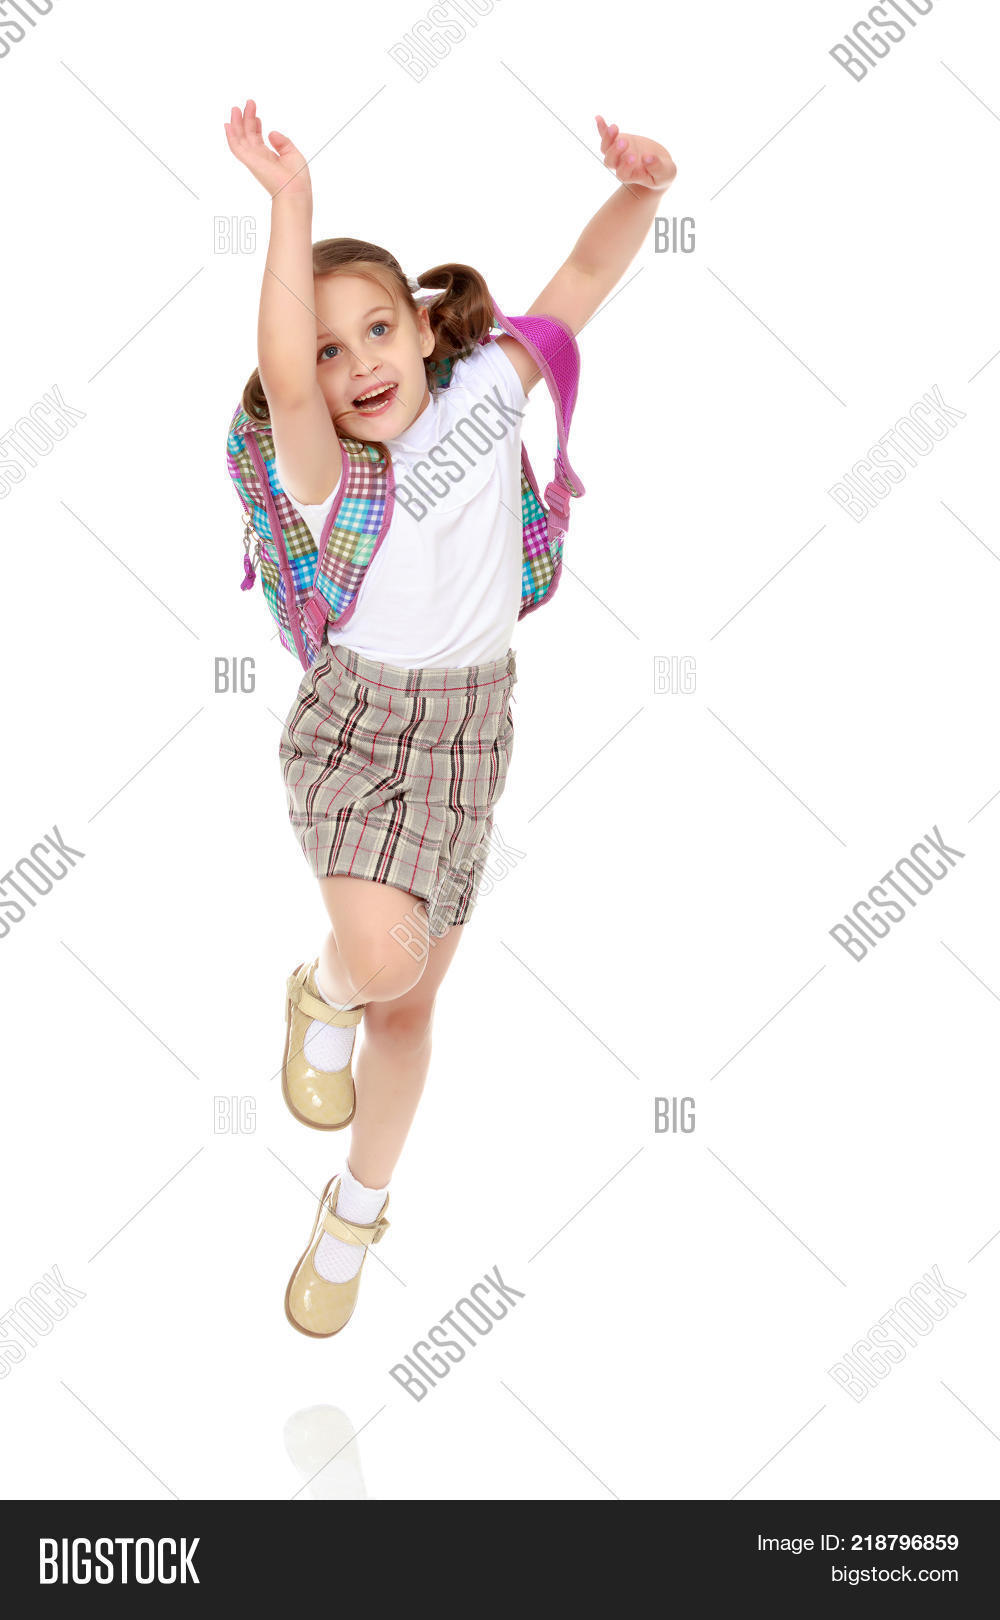 b21c21499 Little Girl Jumping Image   Photo (Free Trial)